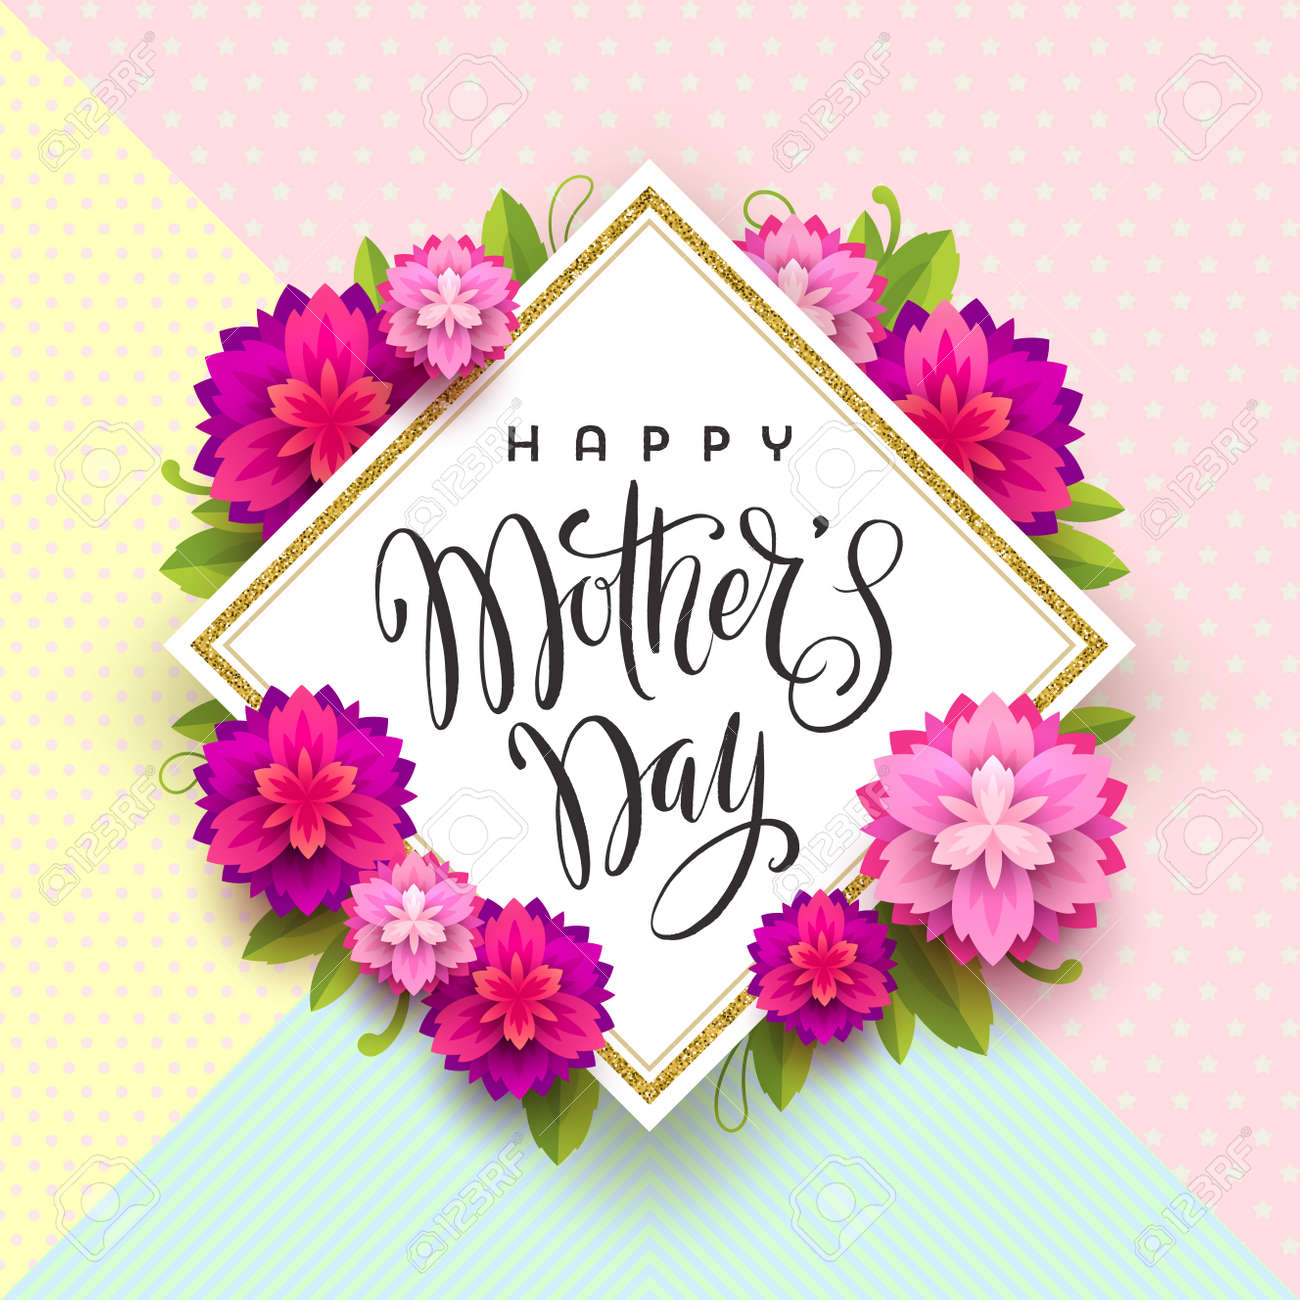 Happy mothers day greeting card brush calligraphy greeting happy mothers day greeting card brush calligraphy greeting and flowers on a pattern background m4hsunfo